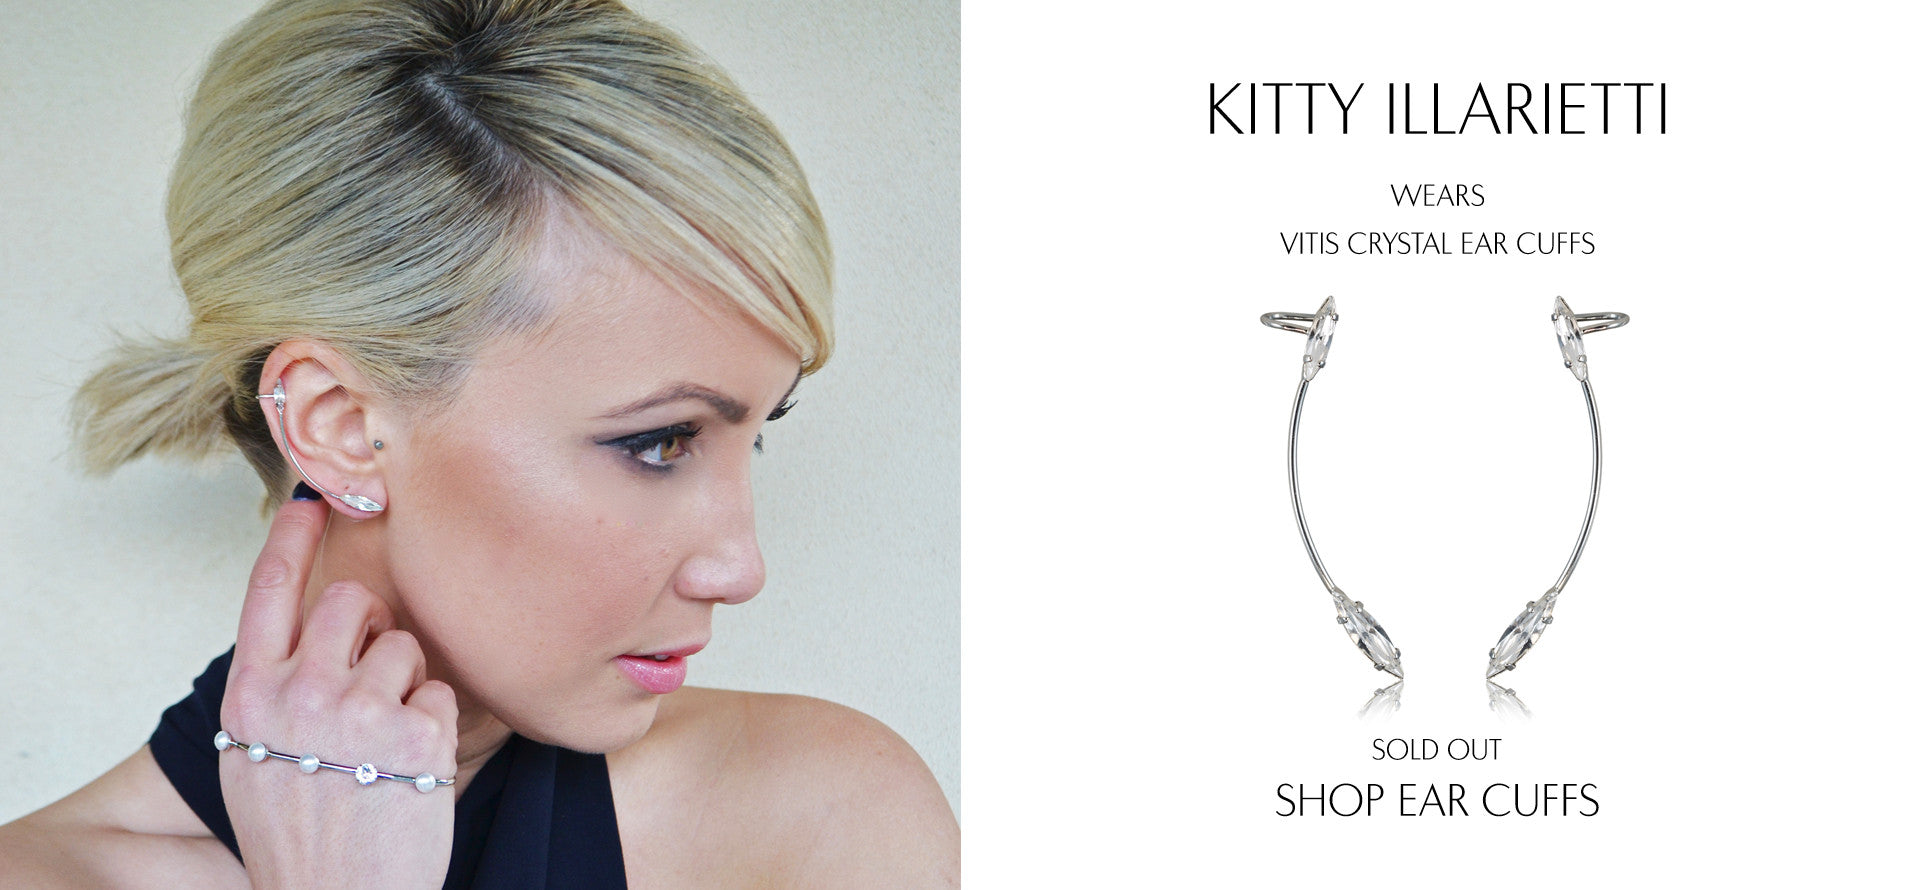 Lock And Key Clothing - Fashion Blog by Kitty Illarietti wears Sarina Suriano Vitis delicate crystal earcuffs